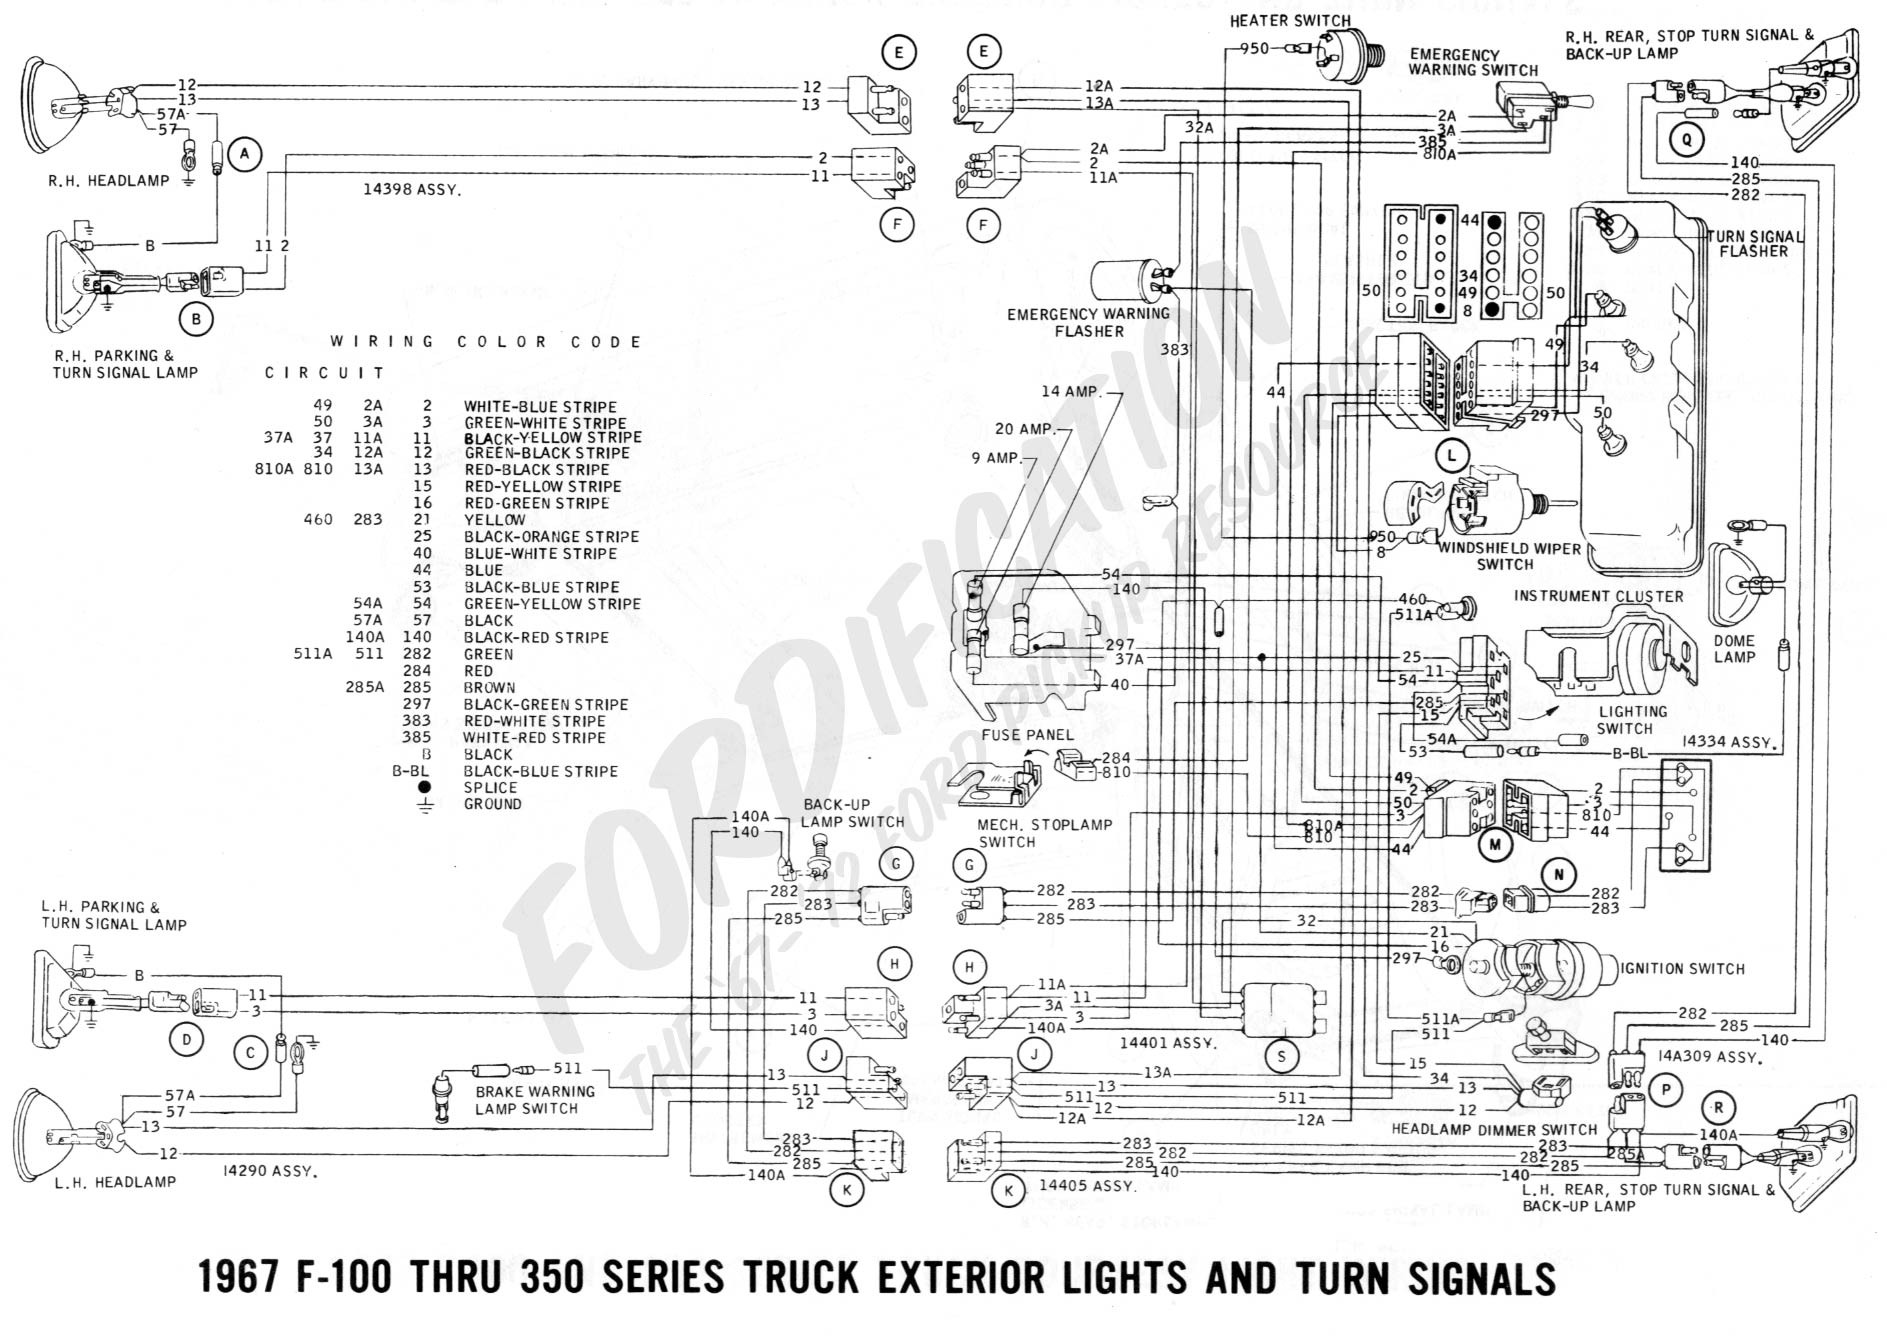 1995 Ford F 350 Alternator Wiring Diagram Electrical F350 Images Gallery